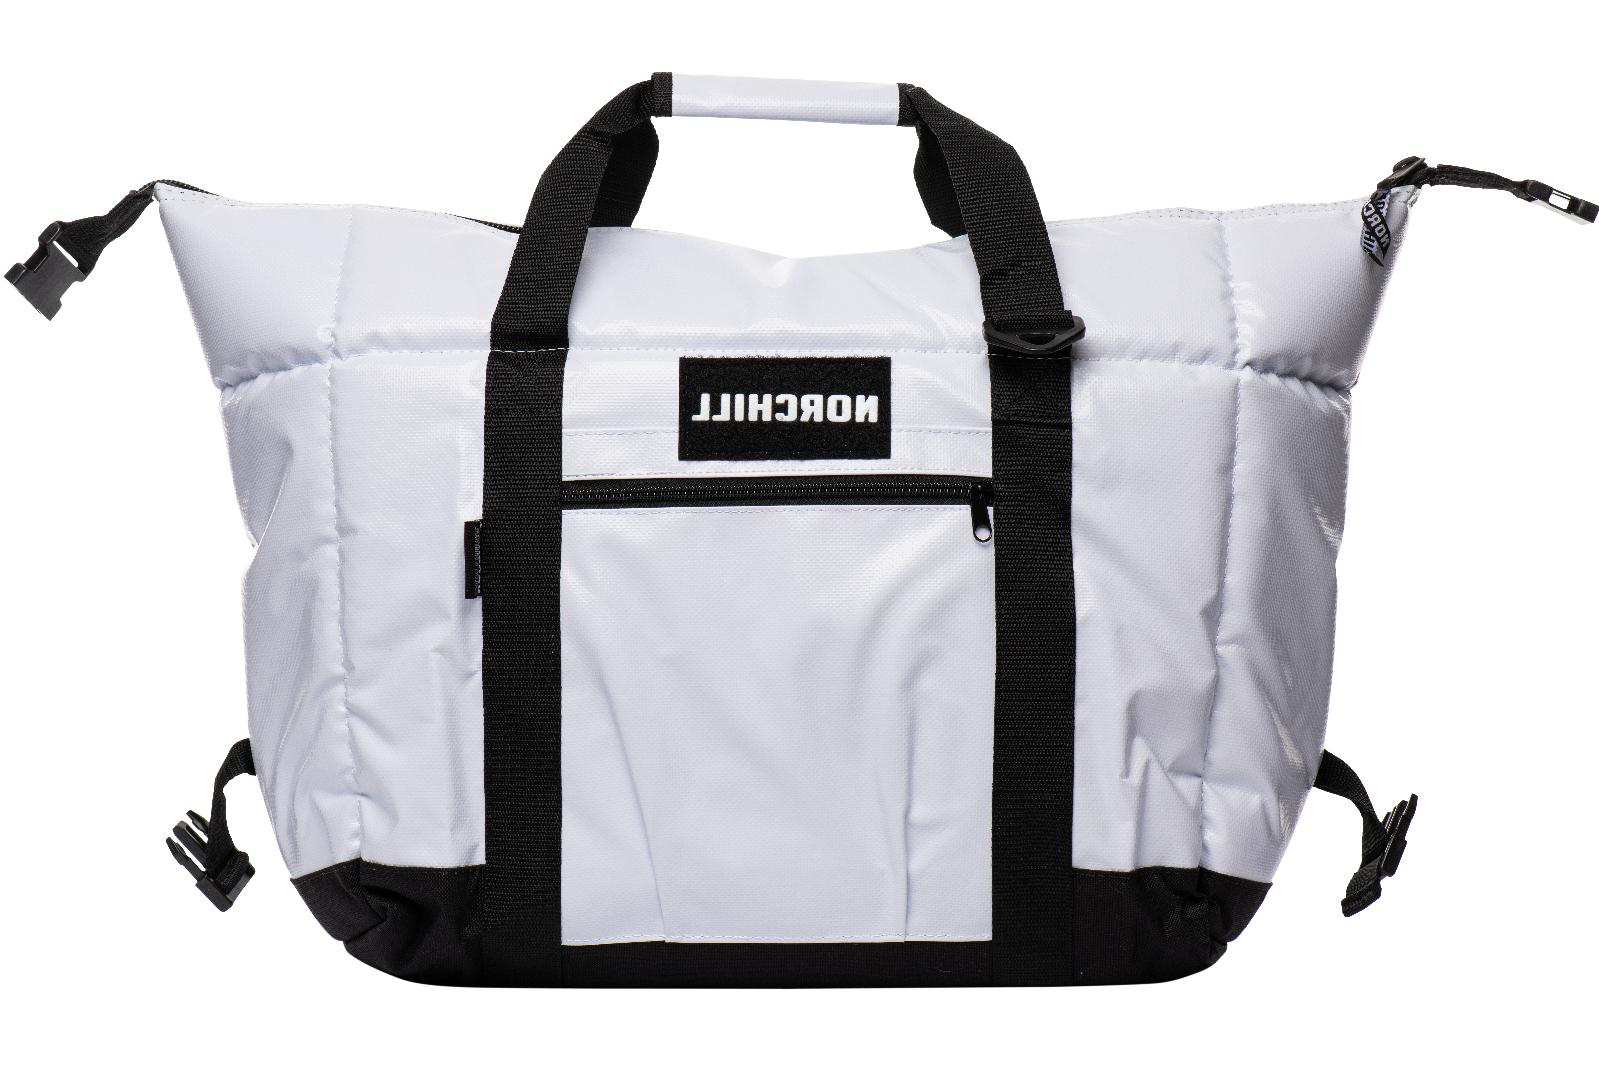 norchill soft side coolers marine boatbag series